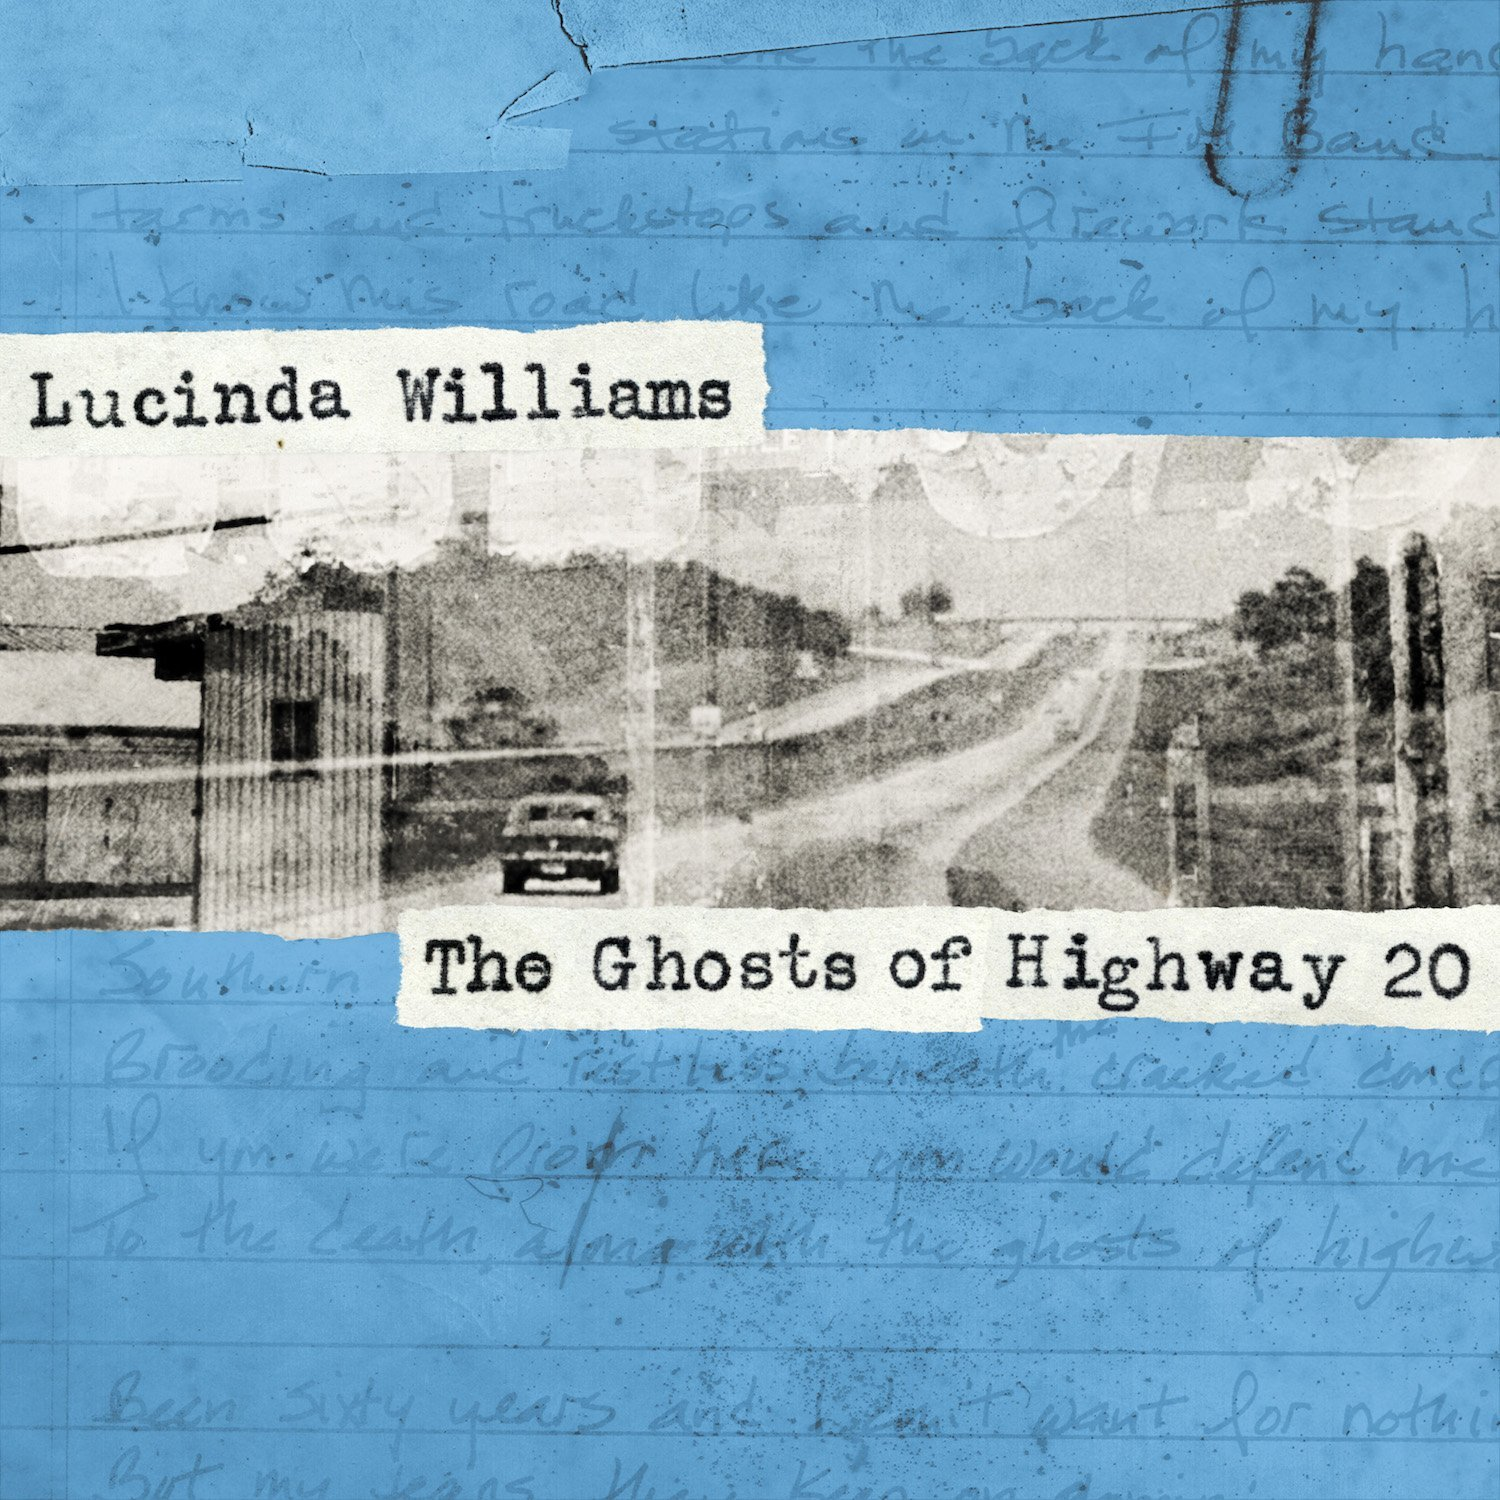 Lucinda Williams: The Ghosts Of Highway 20 [Album Review]